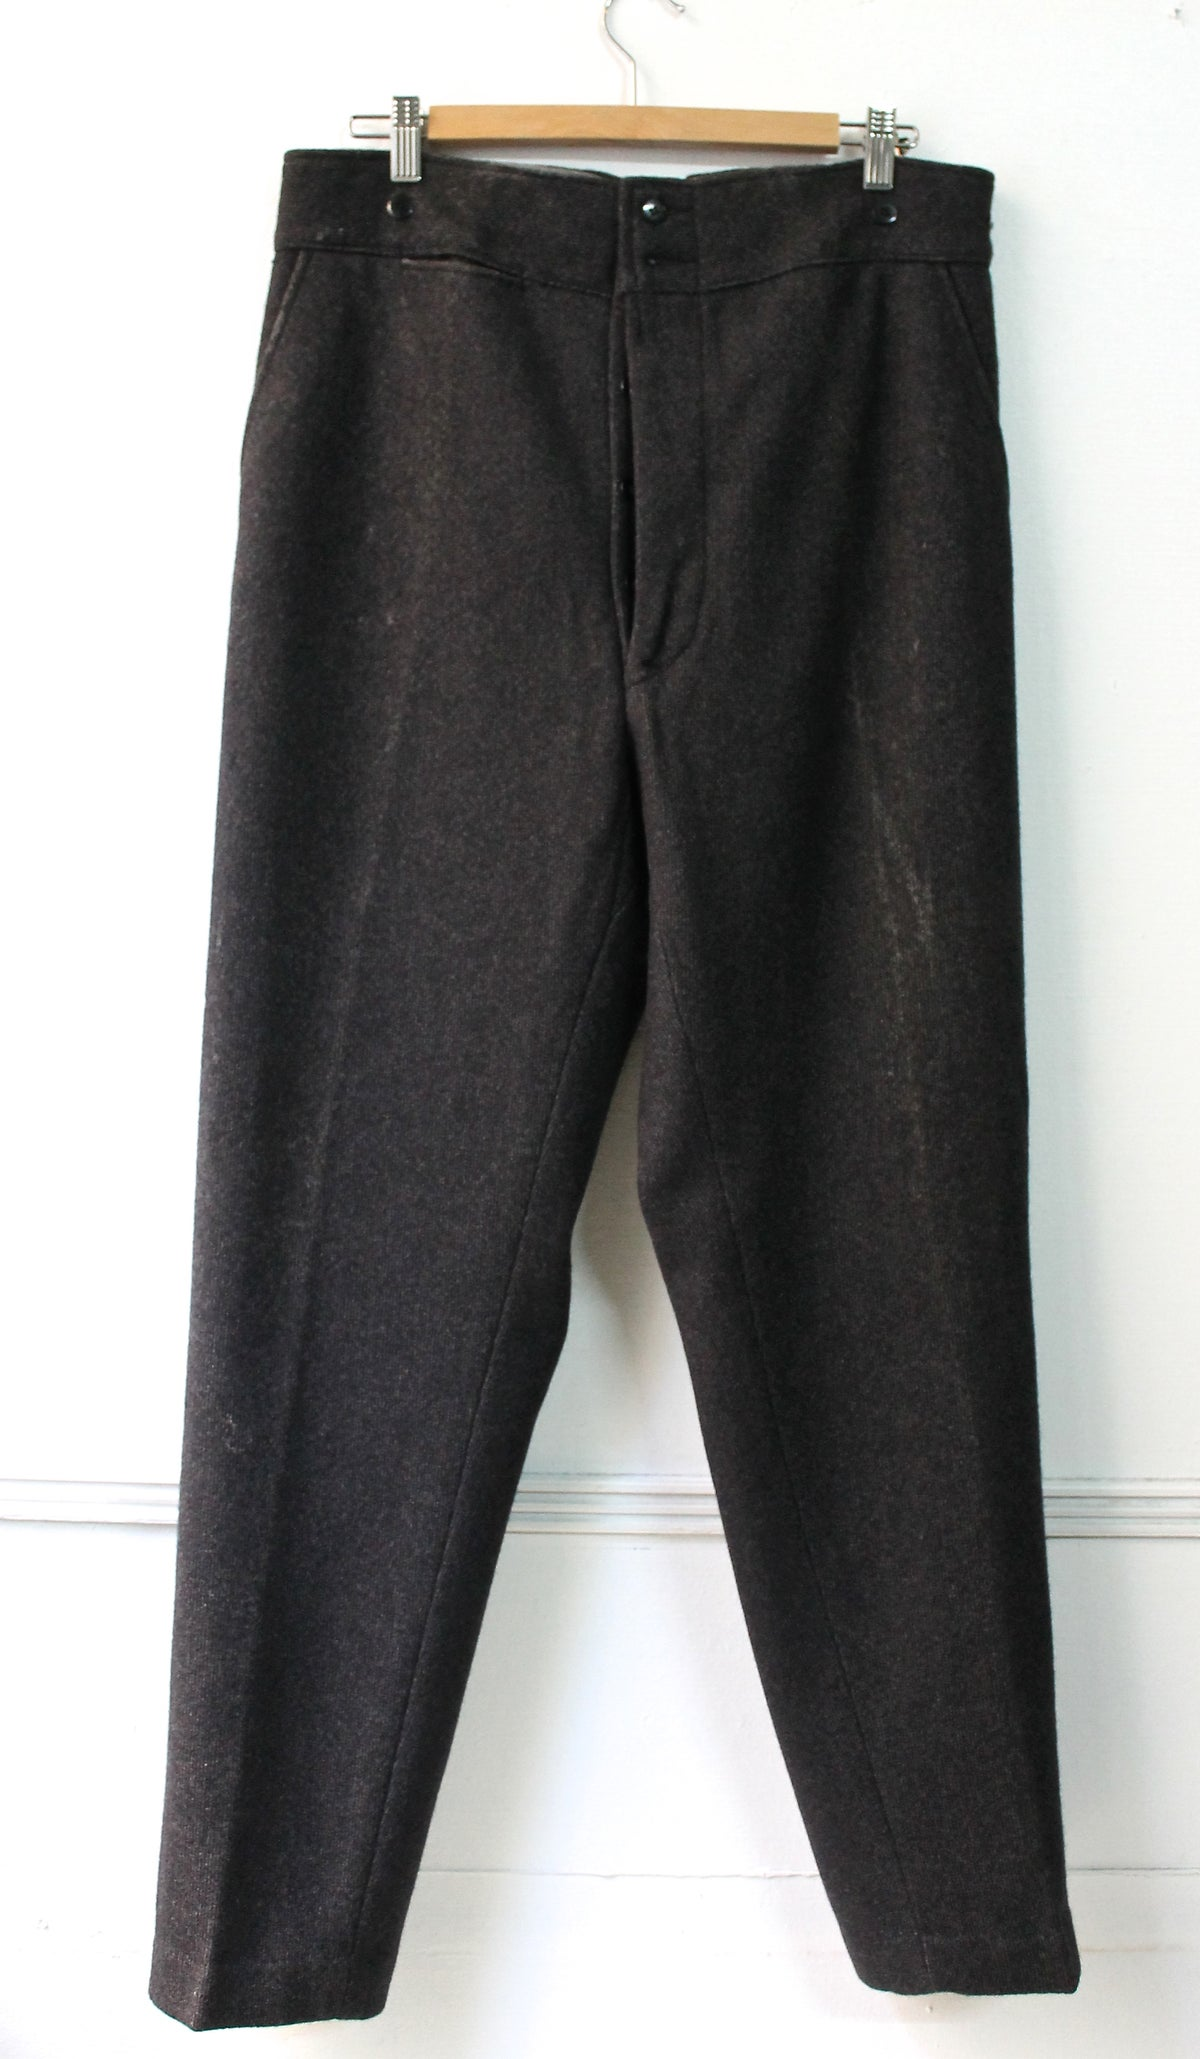 Image of 1940'S FRENCH WOOL PASCAL PANTS DEADSTOCK フレンチウールトラウザーデッドストック